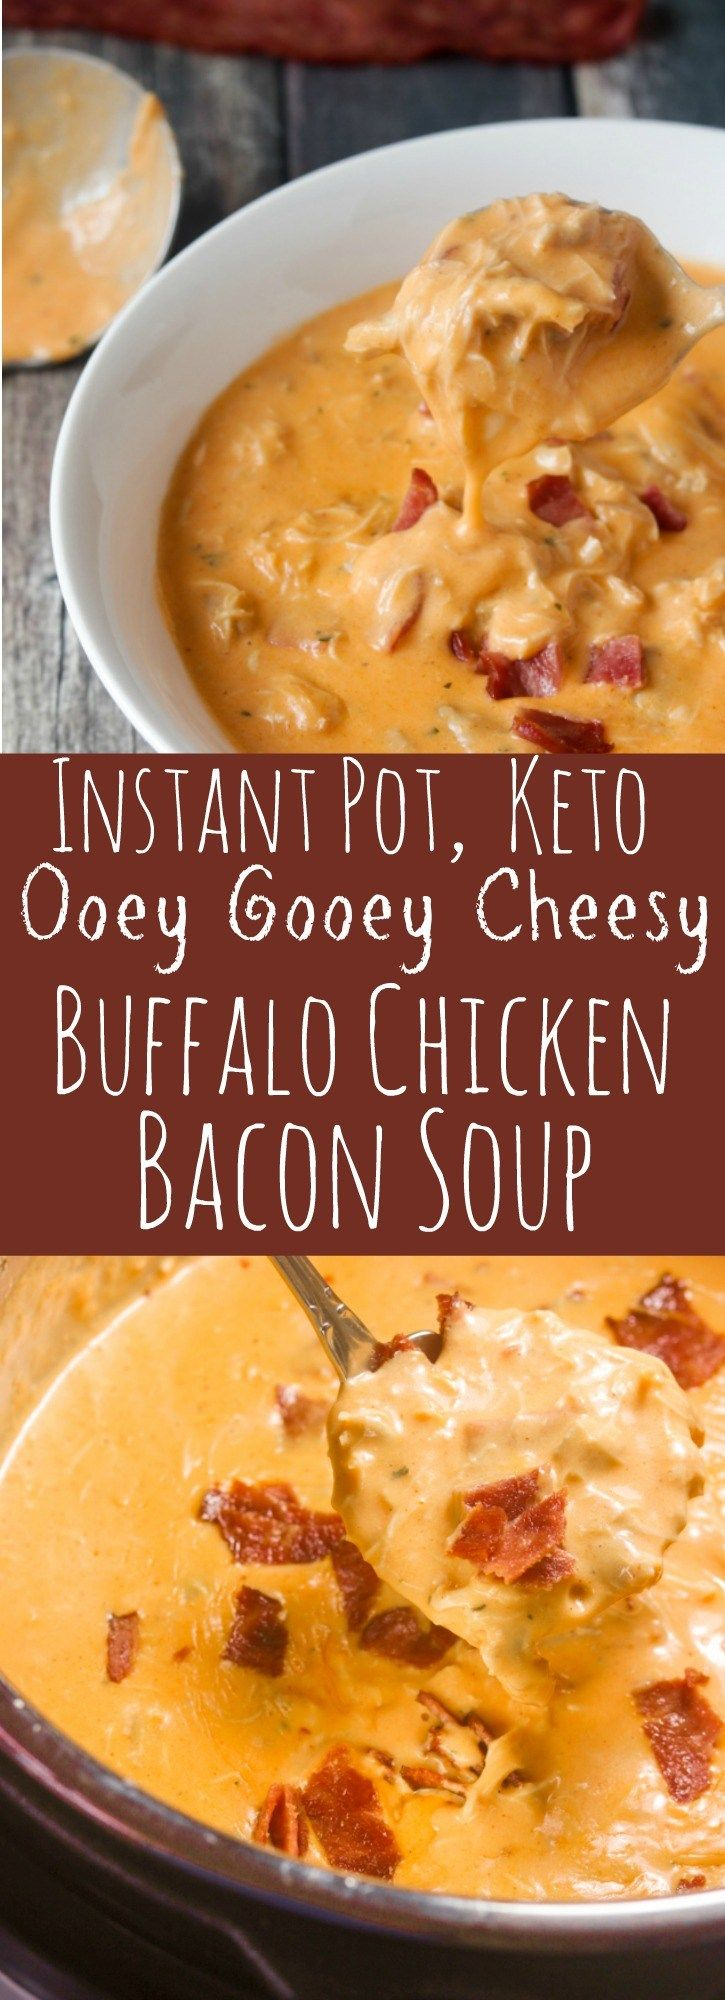 This Instant Pot Keto Buffalo Chicken Bacon Soup has only 3 carbs per serving! F…